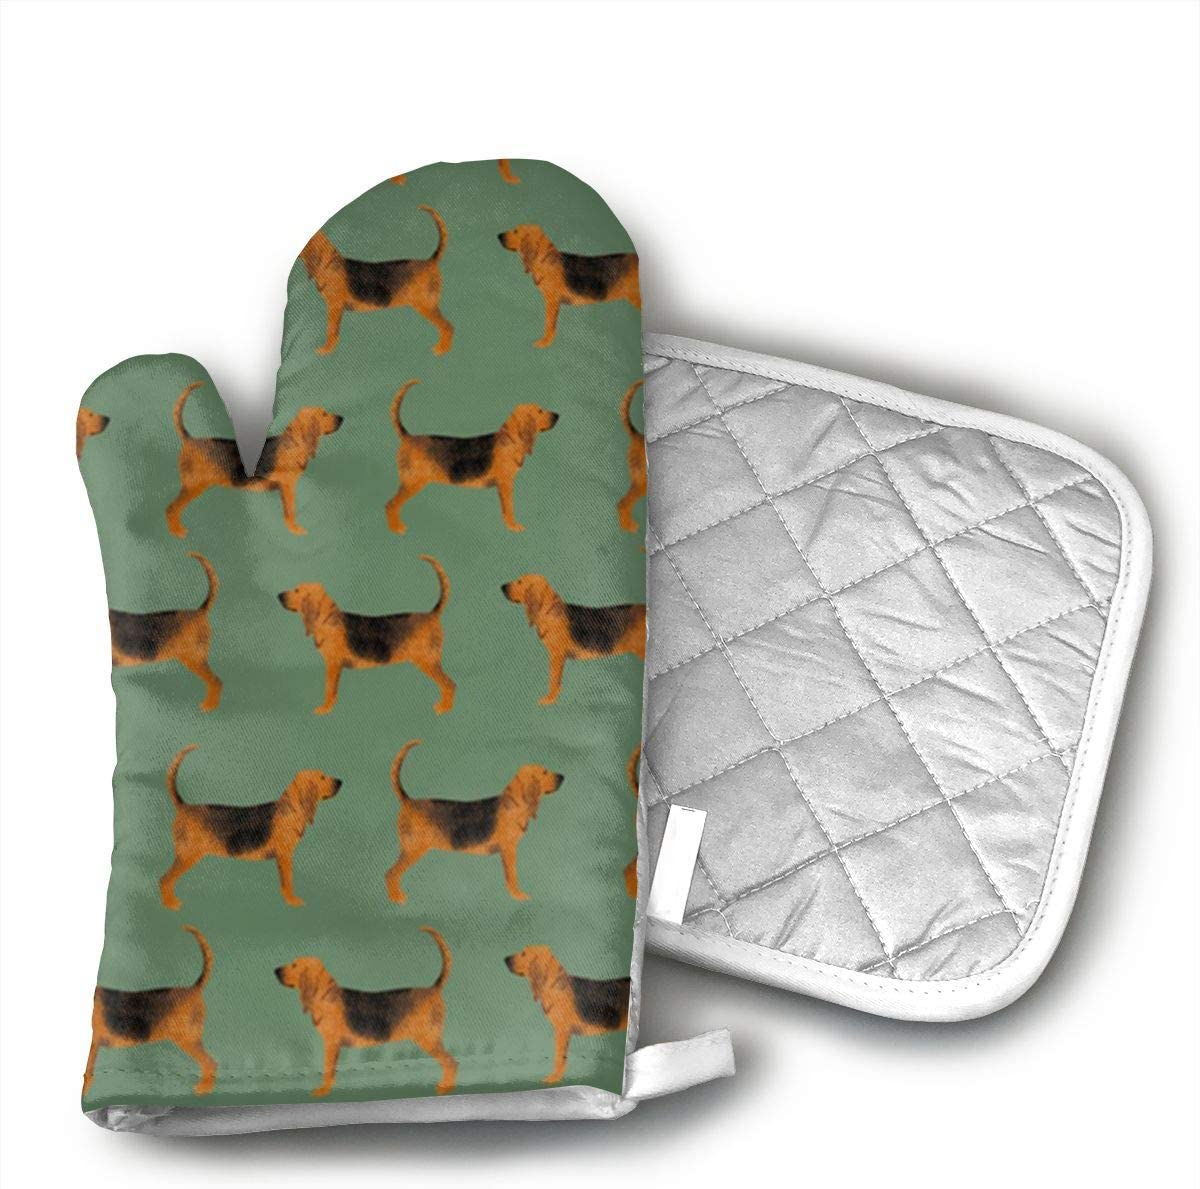 UYRHFS Green Bloodhound Fabric Oven Mitts and Pot Holder Kitchen Set with, Heat Resistant, Oven Gloves and Pot Holders 2pcs Set for BBQ Cooking Baking